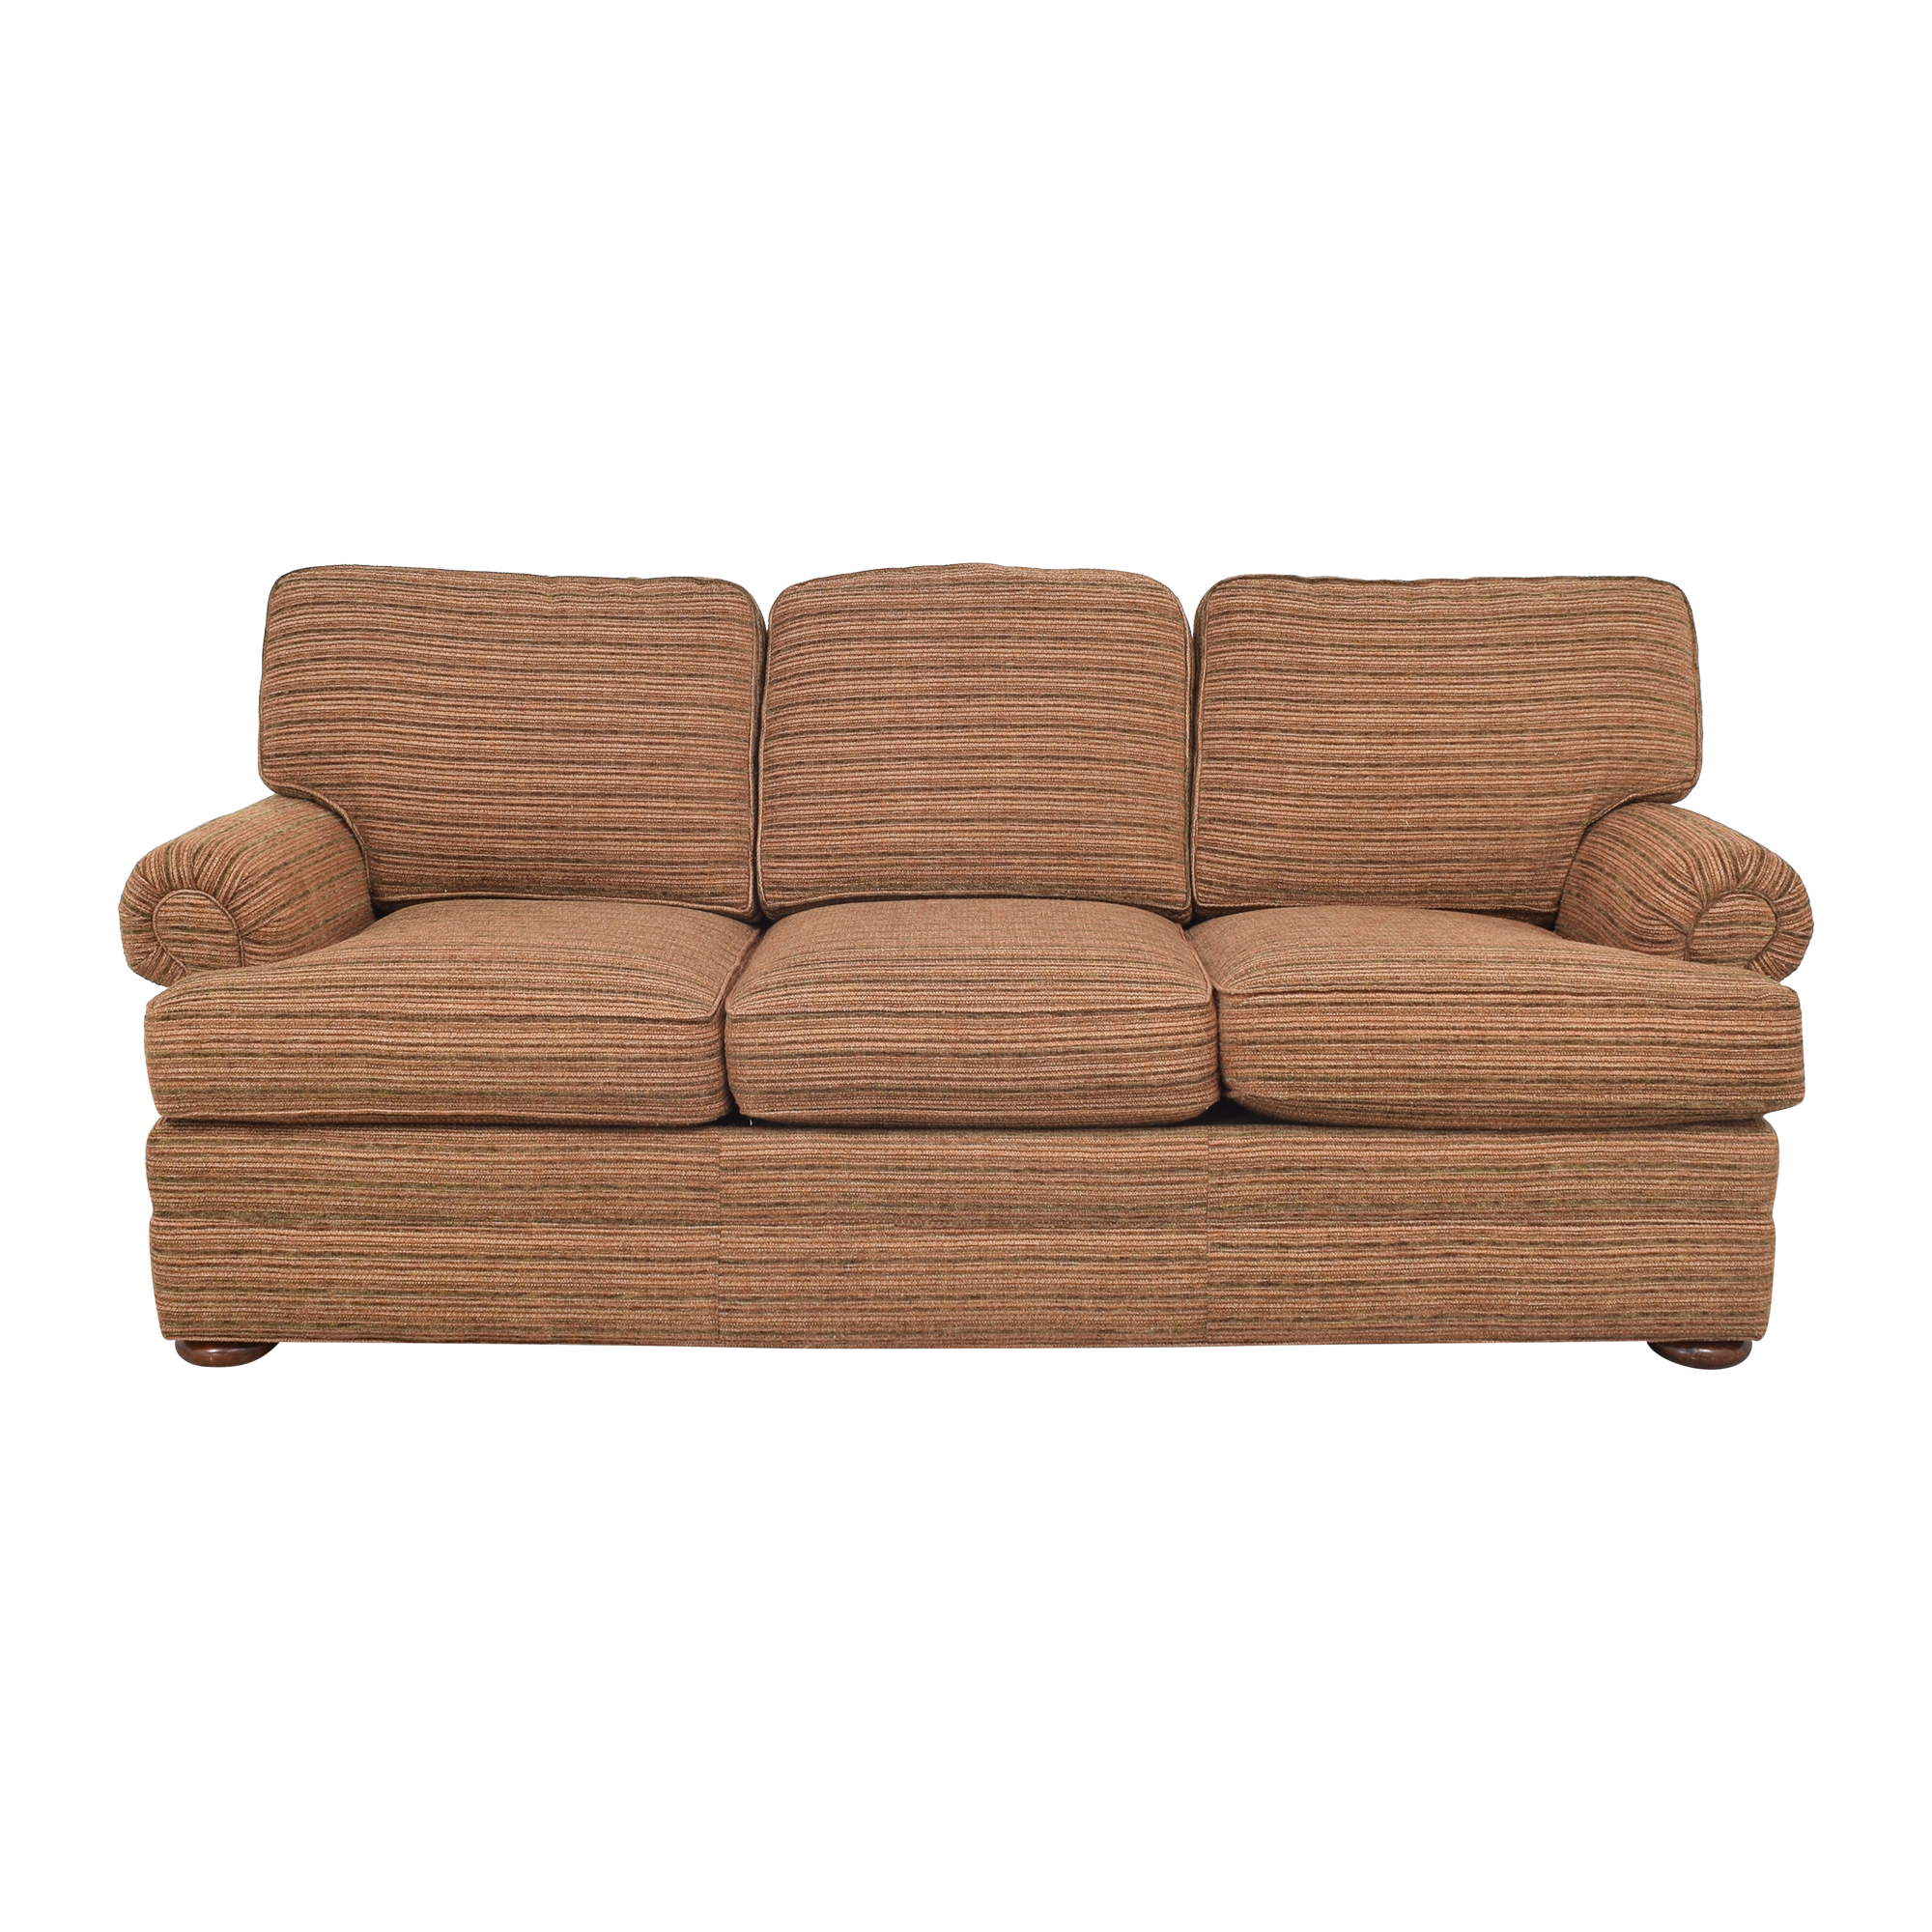 Thomasville Thomasville Custom Sofa for sale